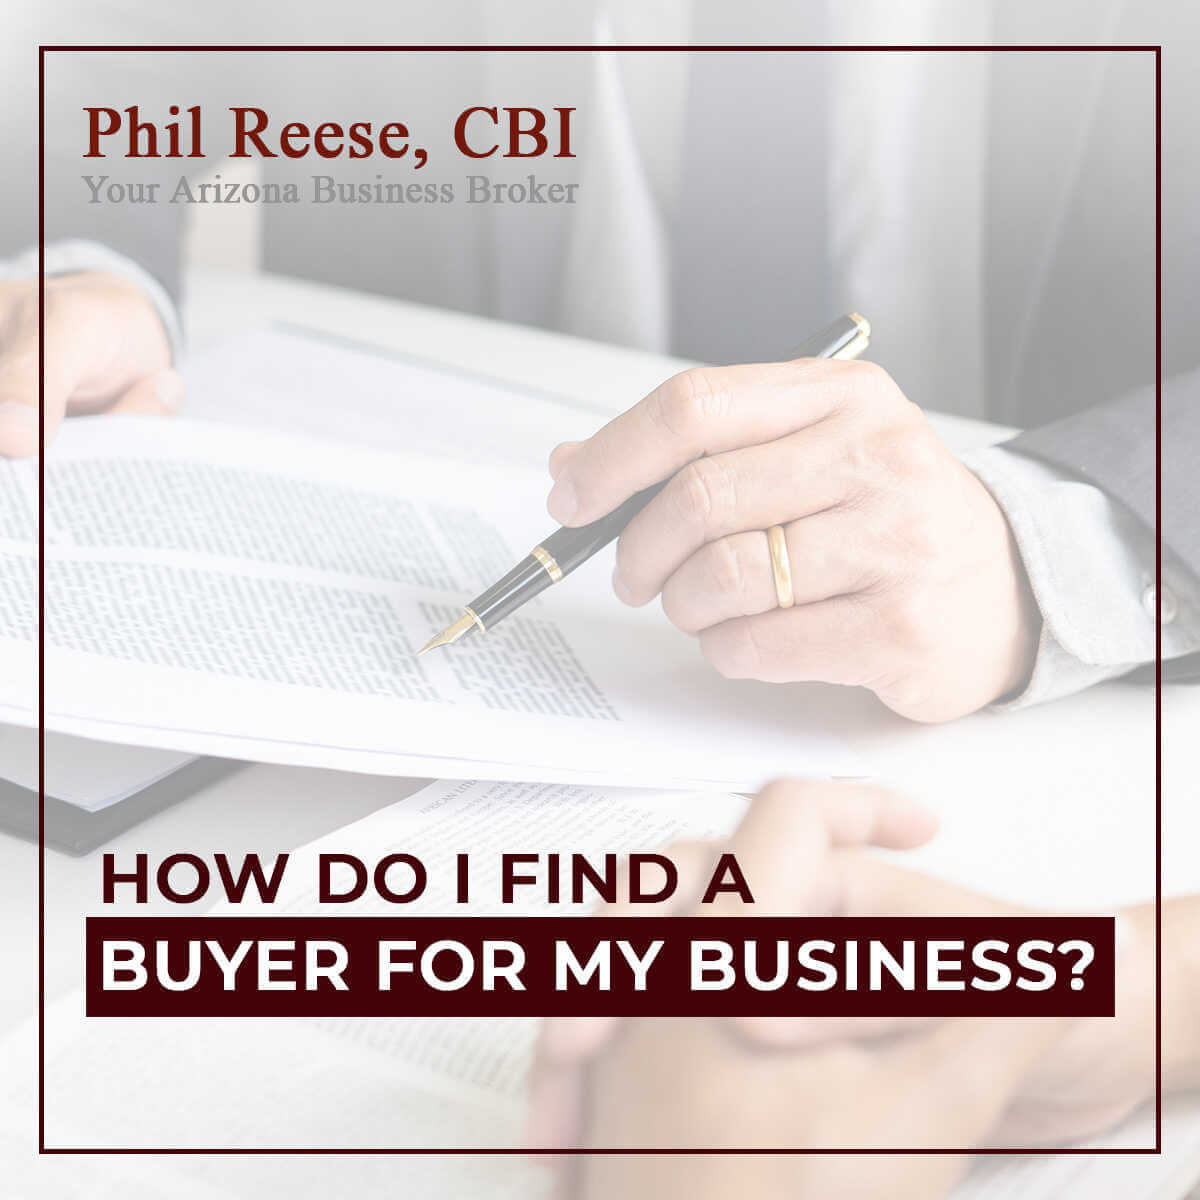 How Do I Find a Buyer For My Business?